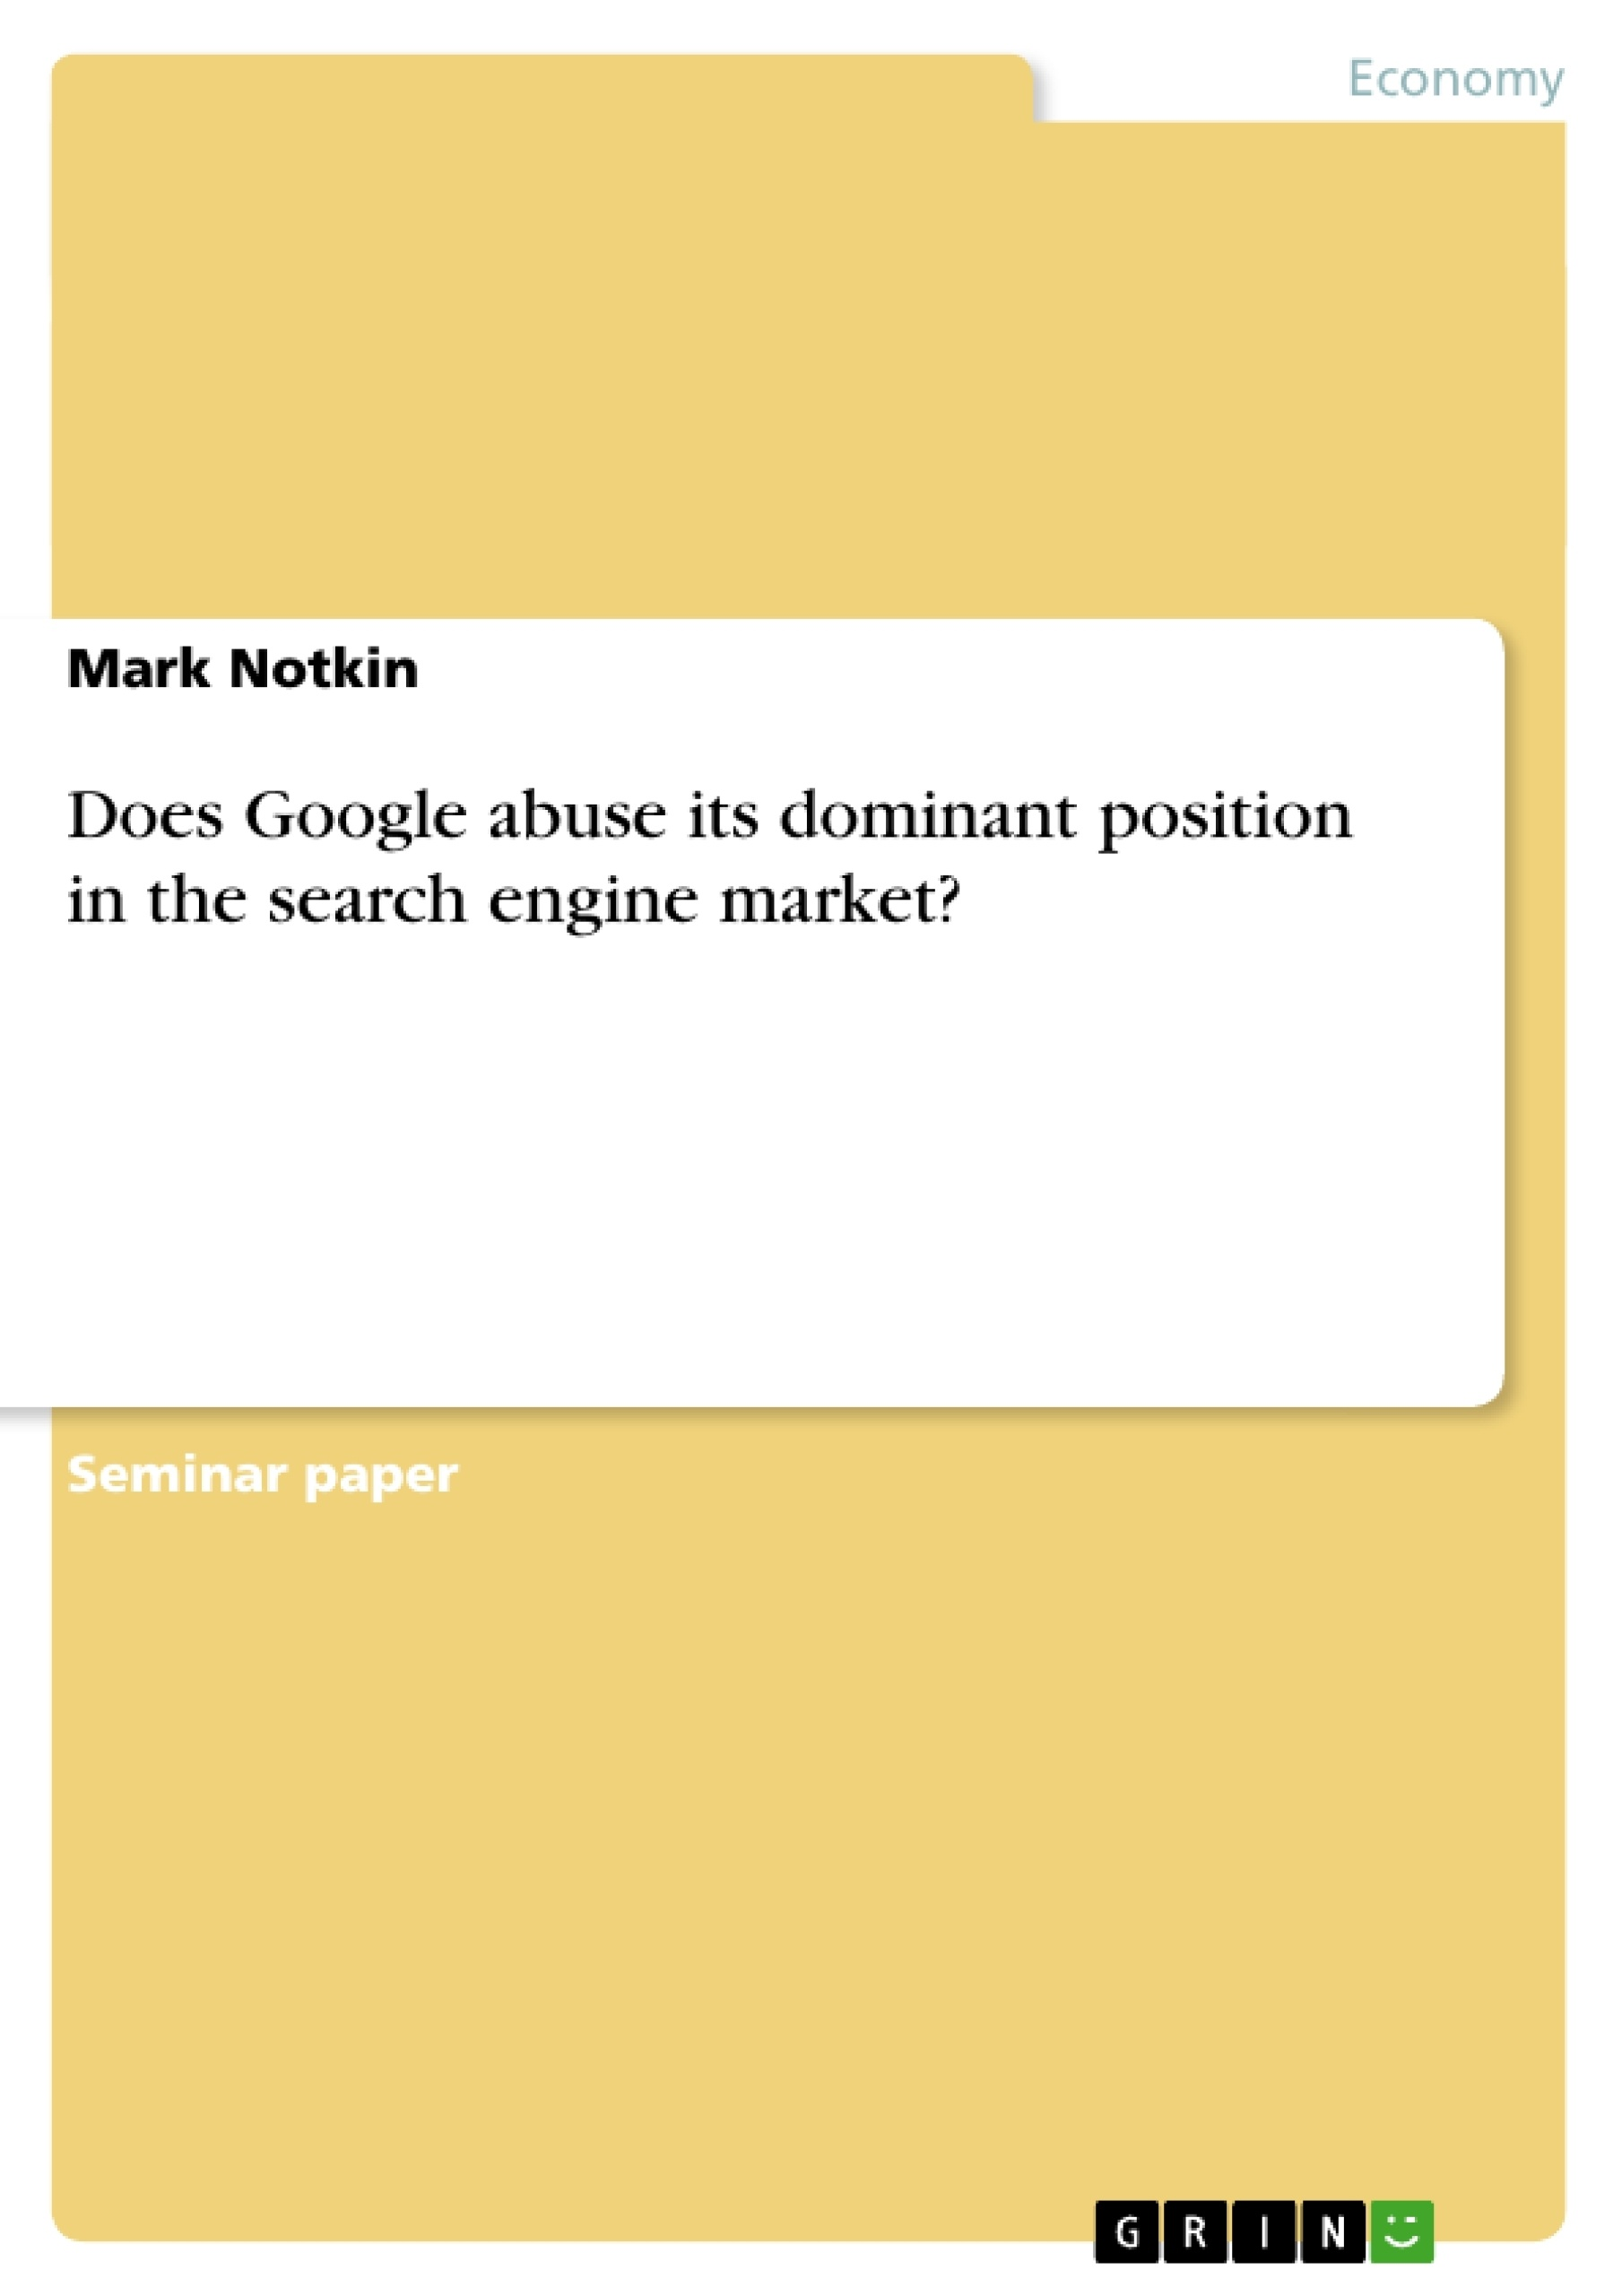 Title: Does Google abuse its dominant position in the search engine market?